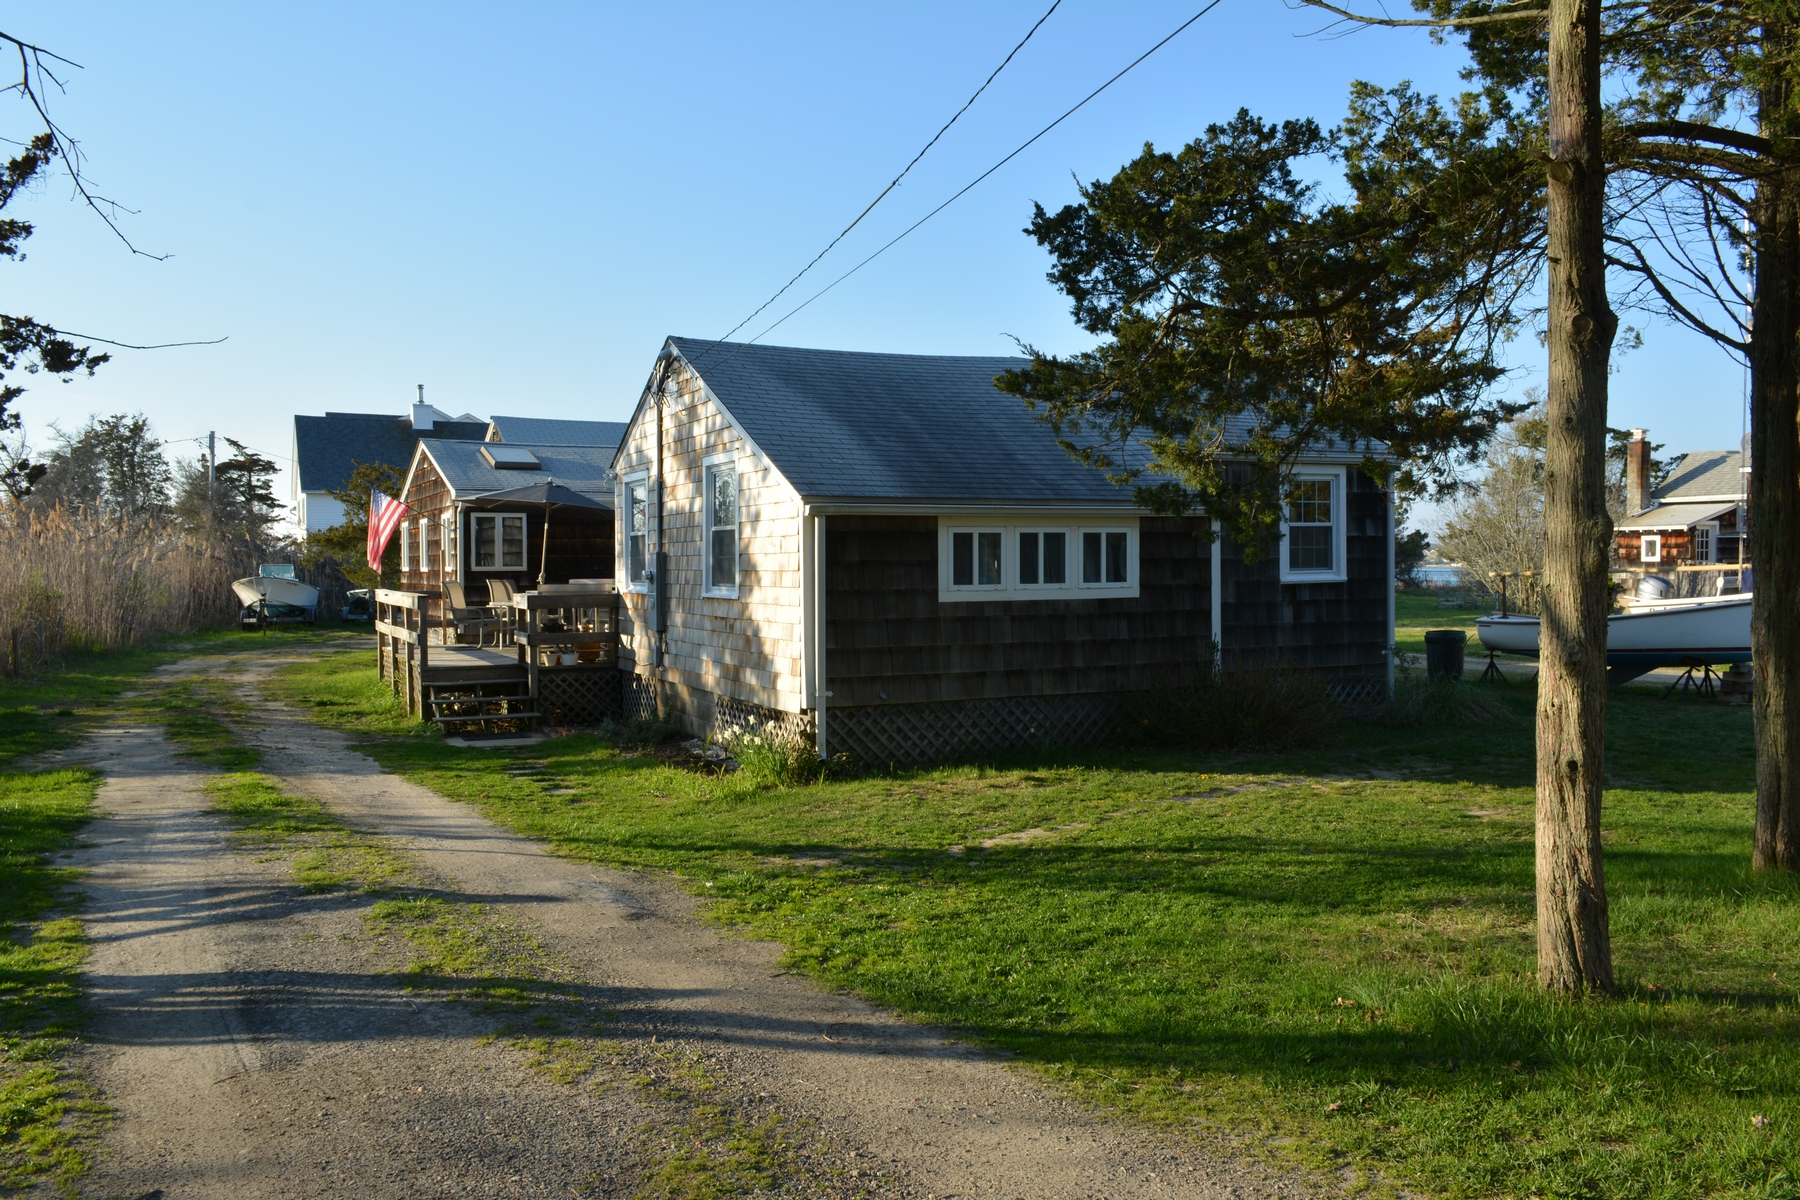 Single Family Home for Sale at Steps to Beach 77 Moriches Island Road East Moriches, New York 11940 United States